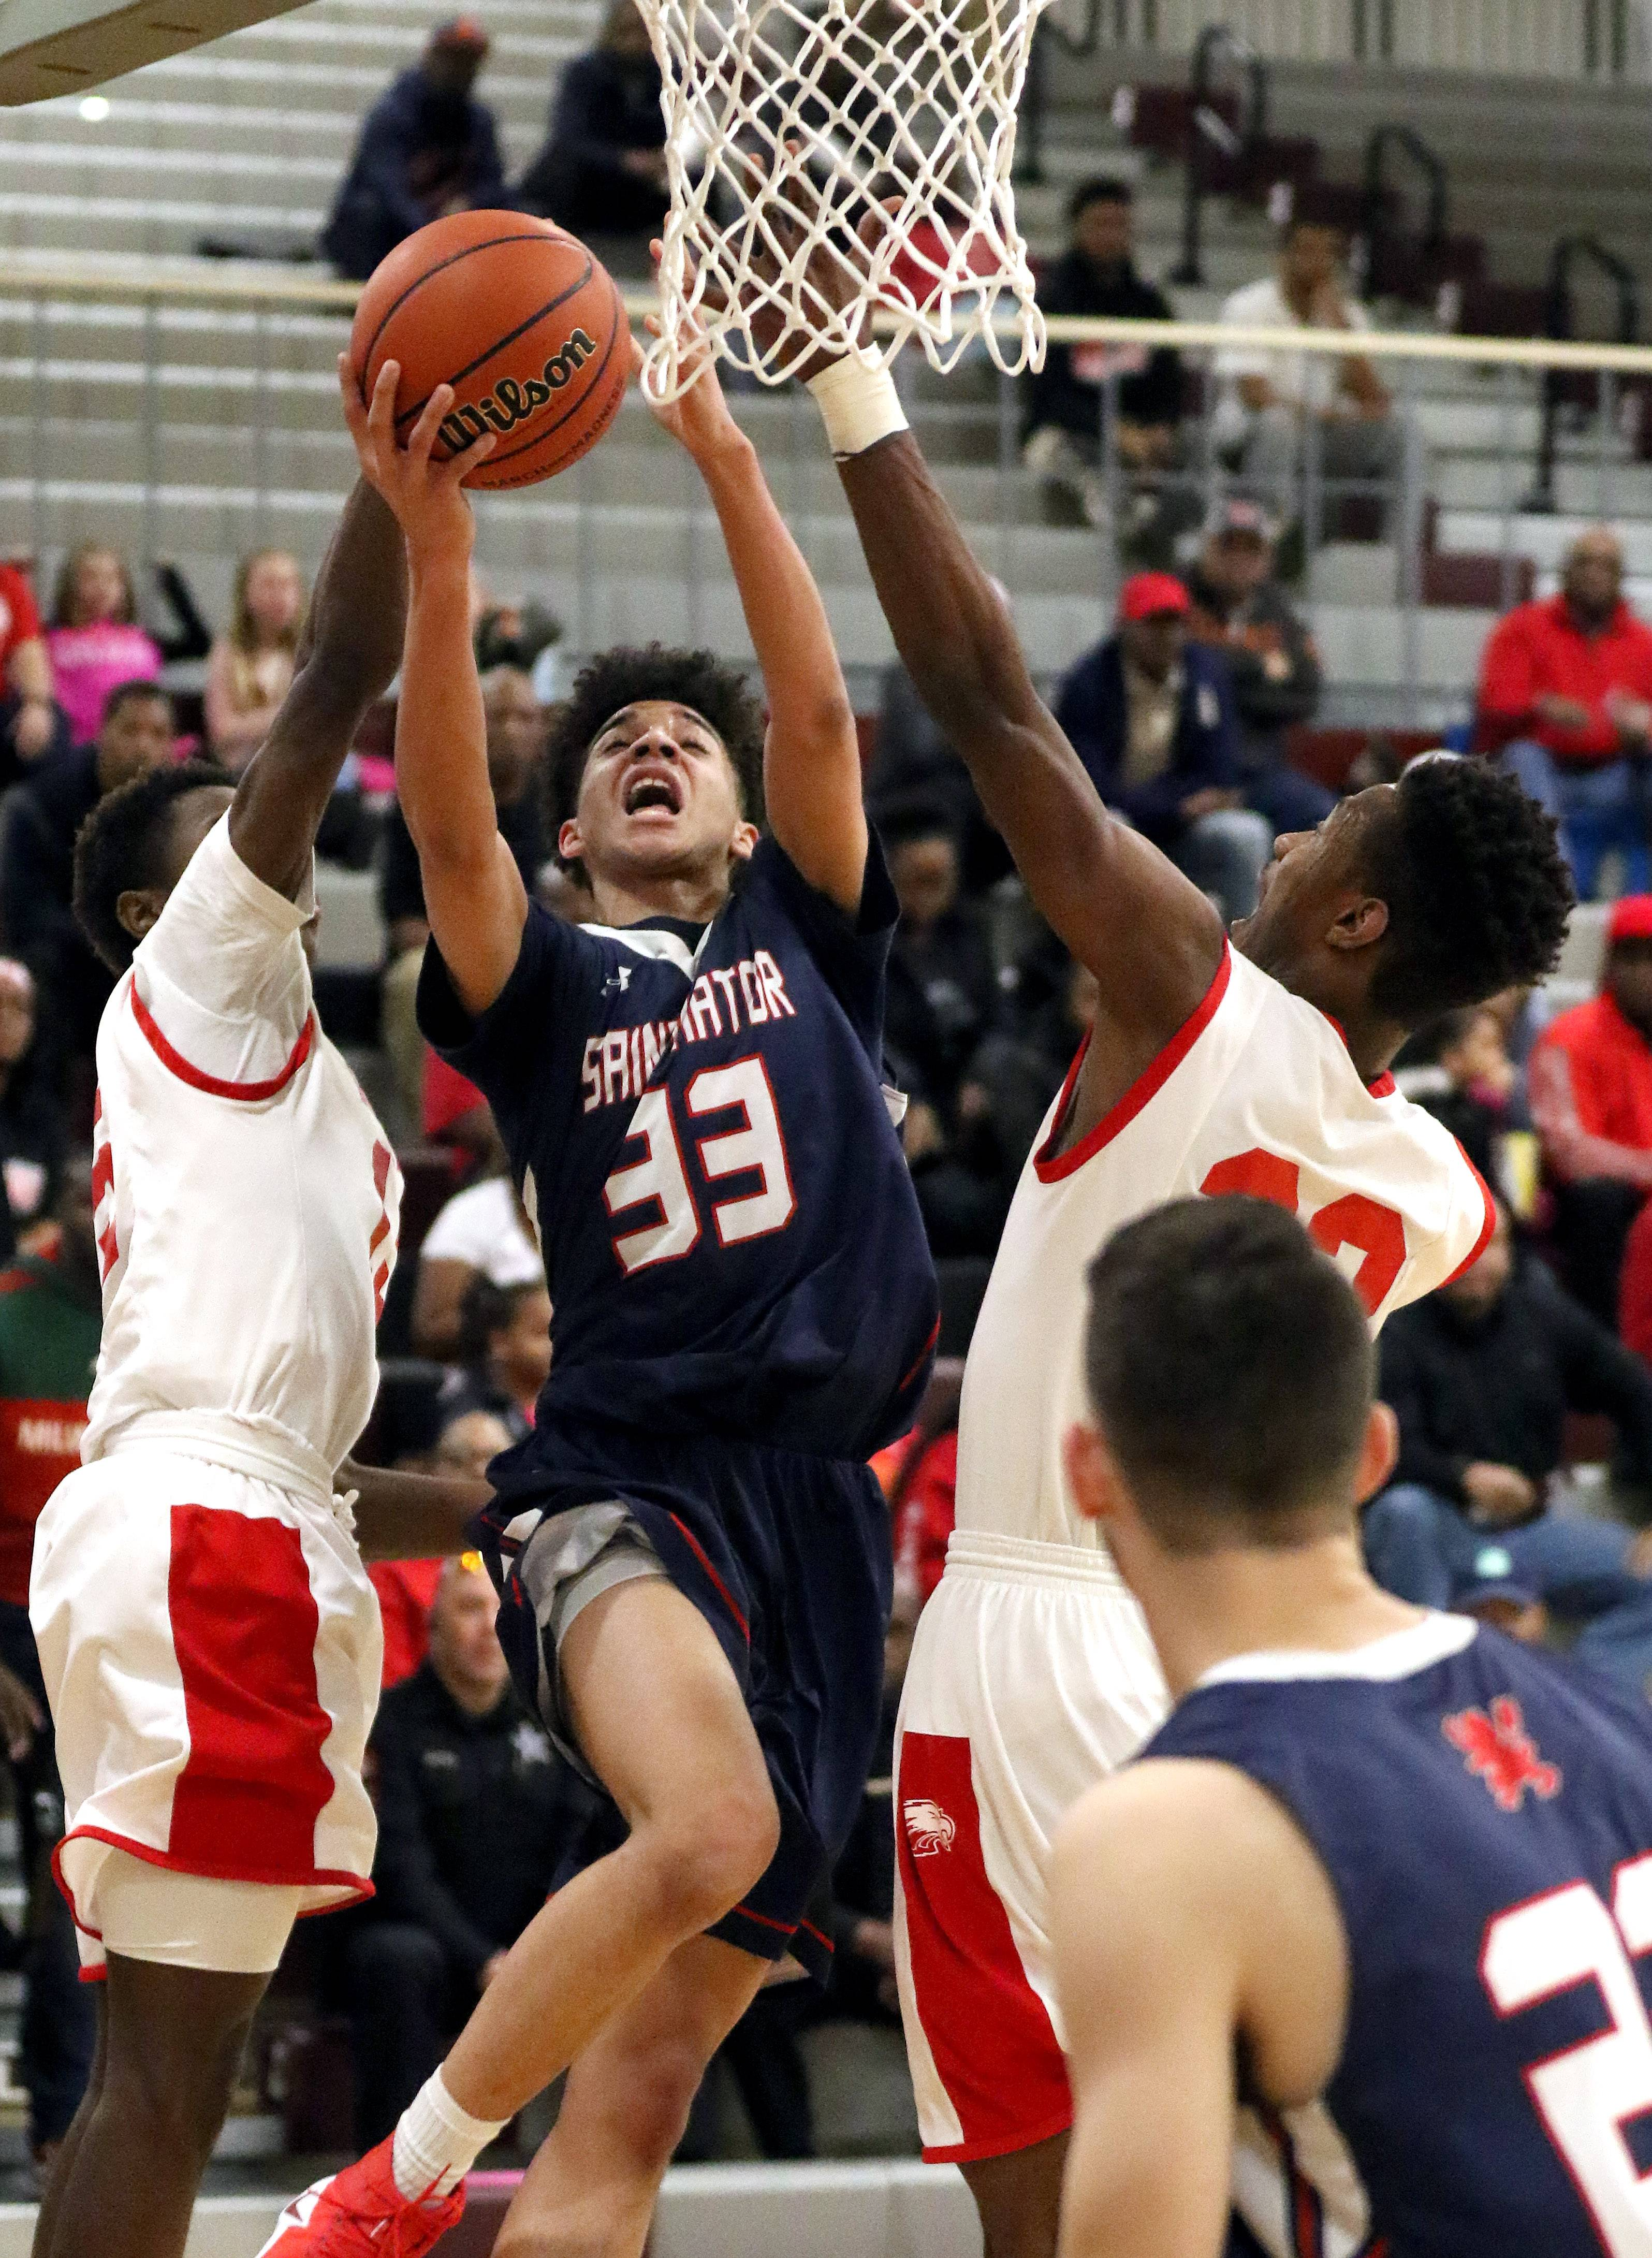 St. Viator's Jeremiah Hernandez (33) drives on North Chicago's Pierce Coleman, left, and Terrell Grier in the Class 3A sectional final at Antioch on Friday.